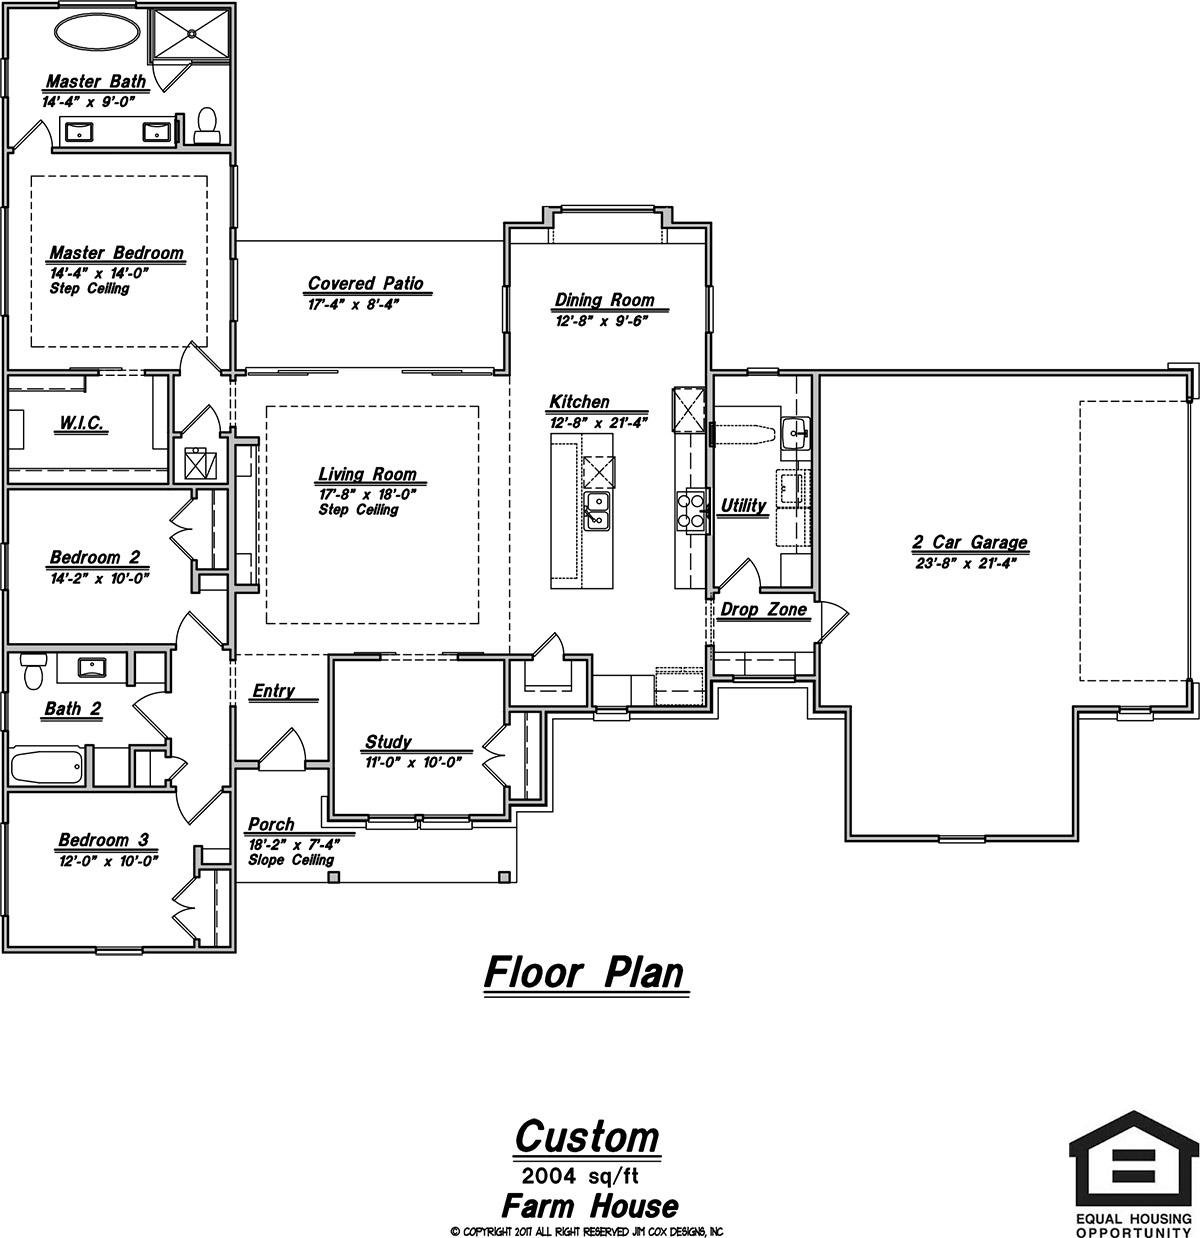 Foremost homes floor plans 28 images 100 foremost for Foremost homes floor plans